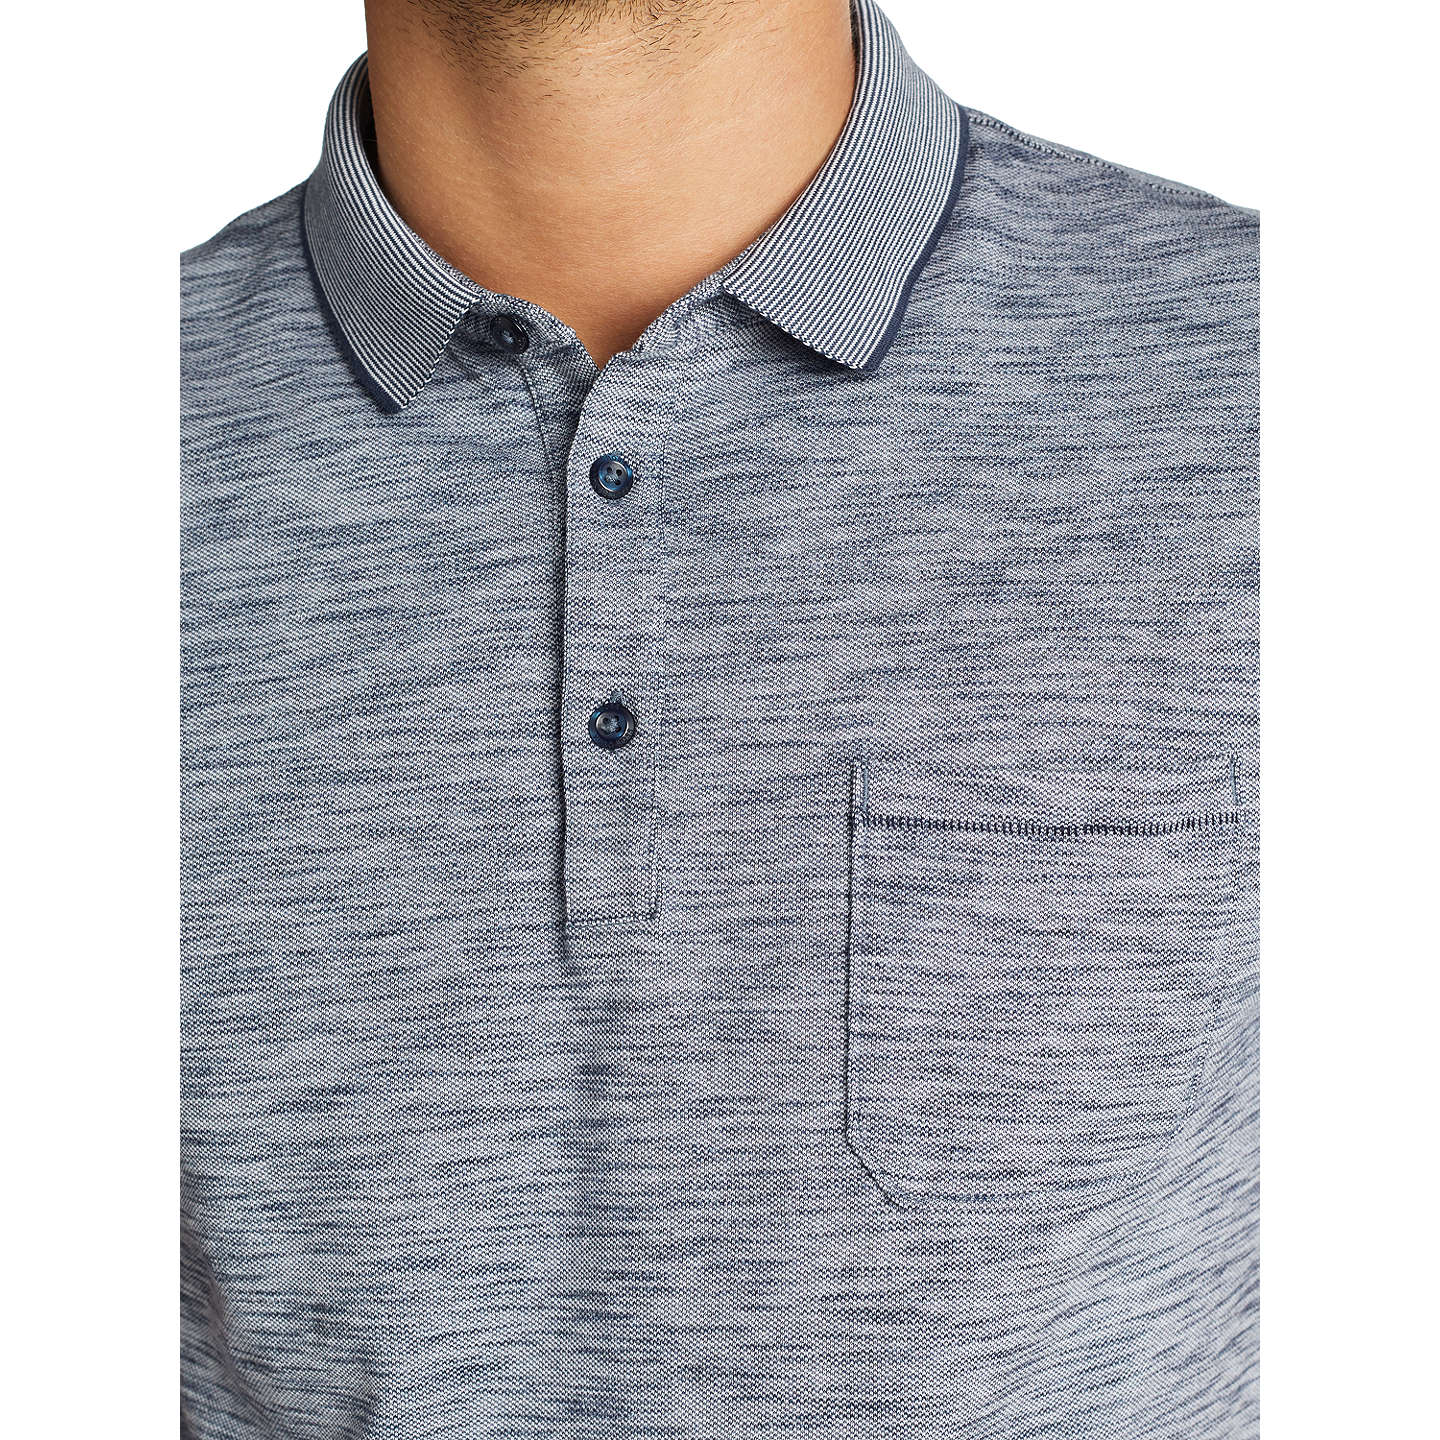 BuyBOSS Playful Short Sleeve Polo Shirt, Dark Blue, S Online at johnlewis.com